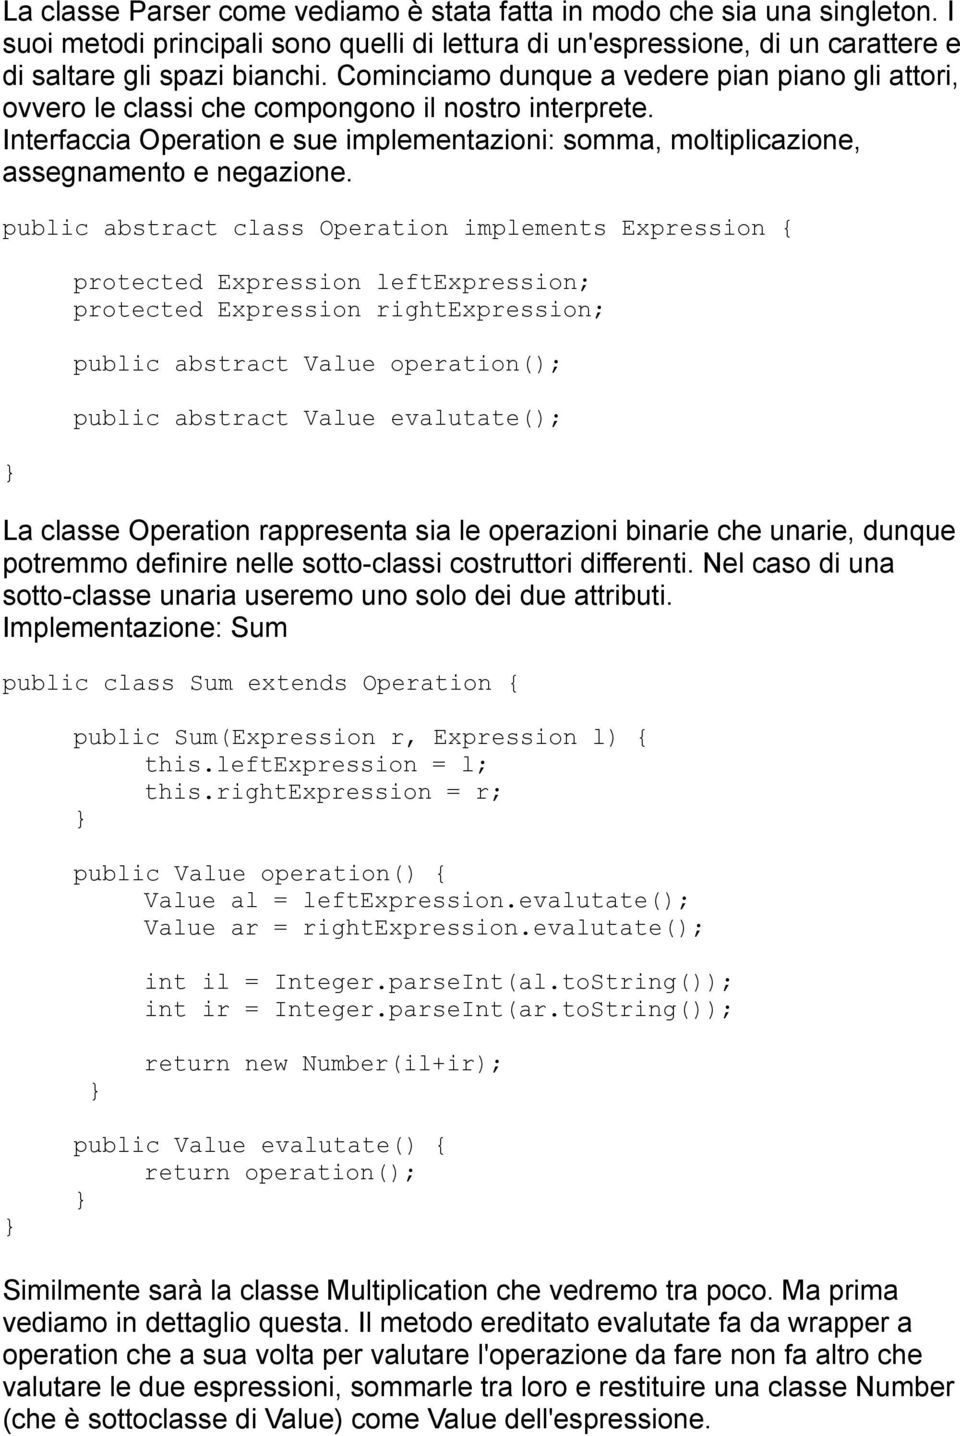 public abstract class Operation implements Expression { protected Expression leftexpression; protected Expression rightexpression; public abstract Value operation(); public abstract Value